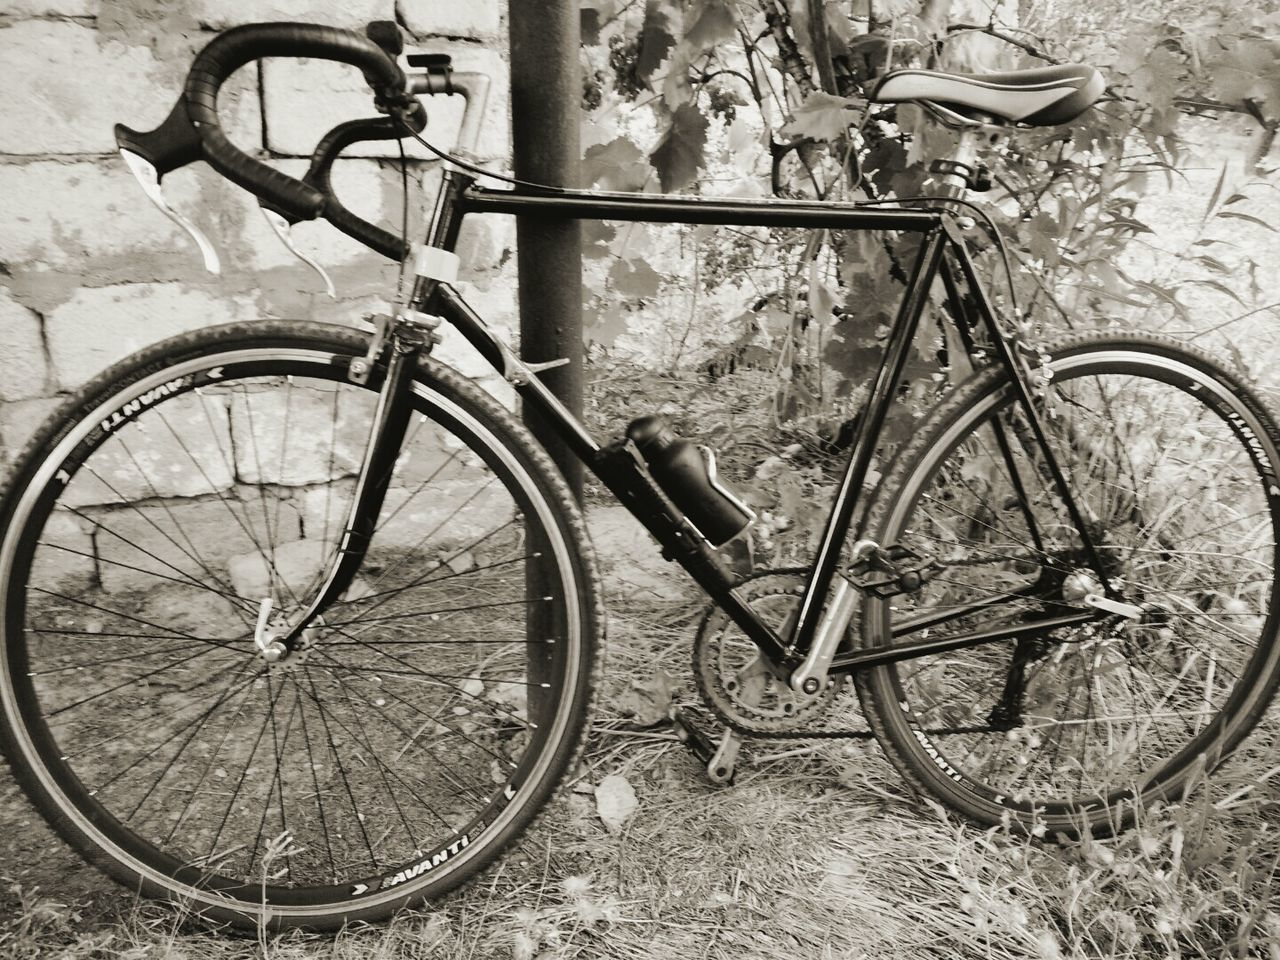 bicycle, transportation, mode of transport, land vehicle, stationary, parking, no people, outdoors, bicycle rack, day, old-fashioned